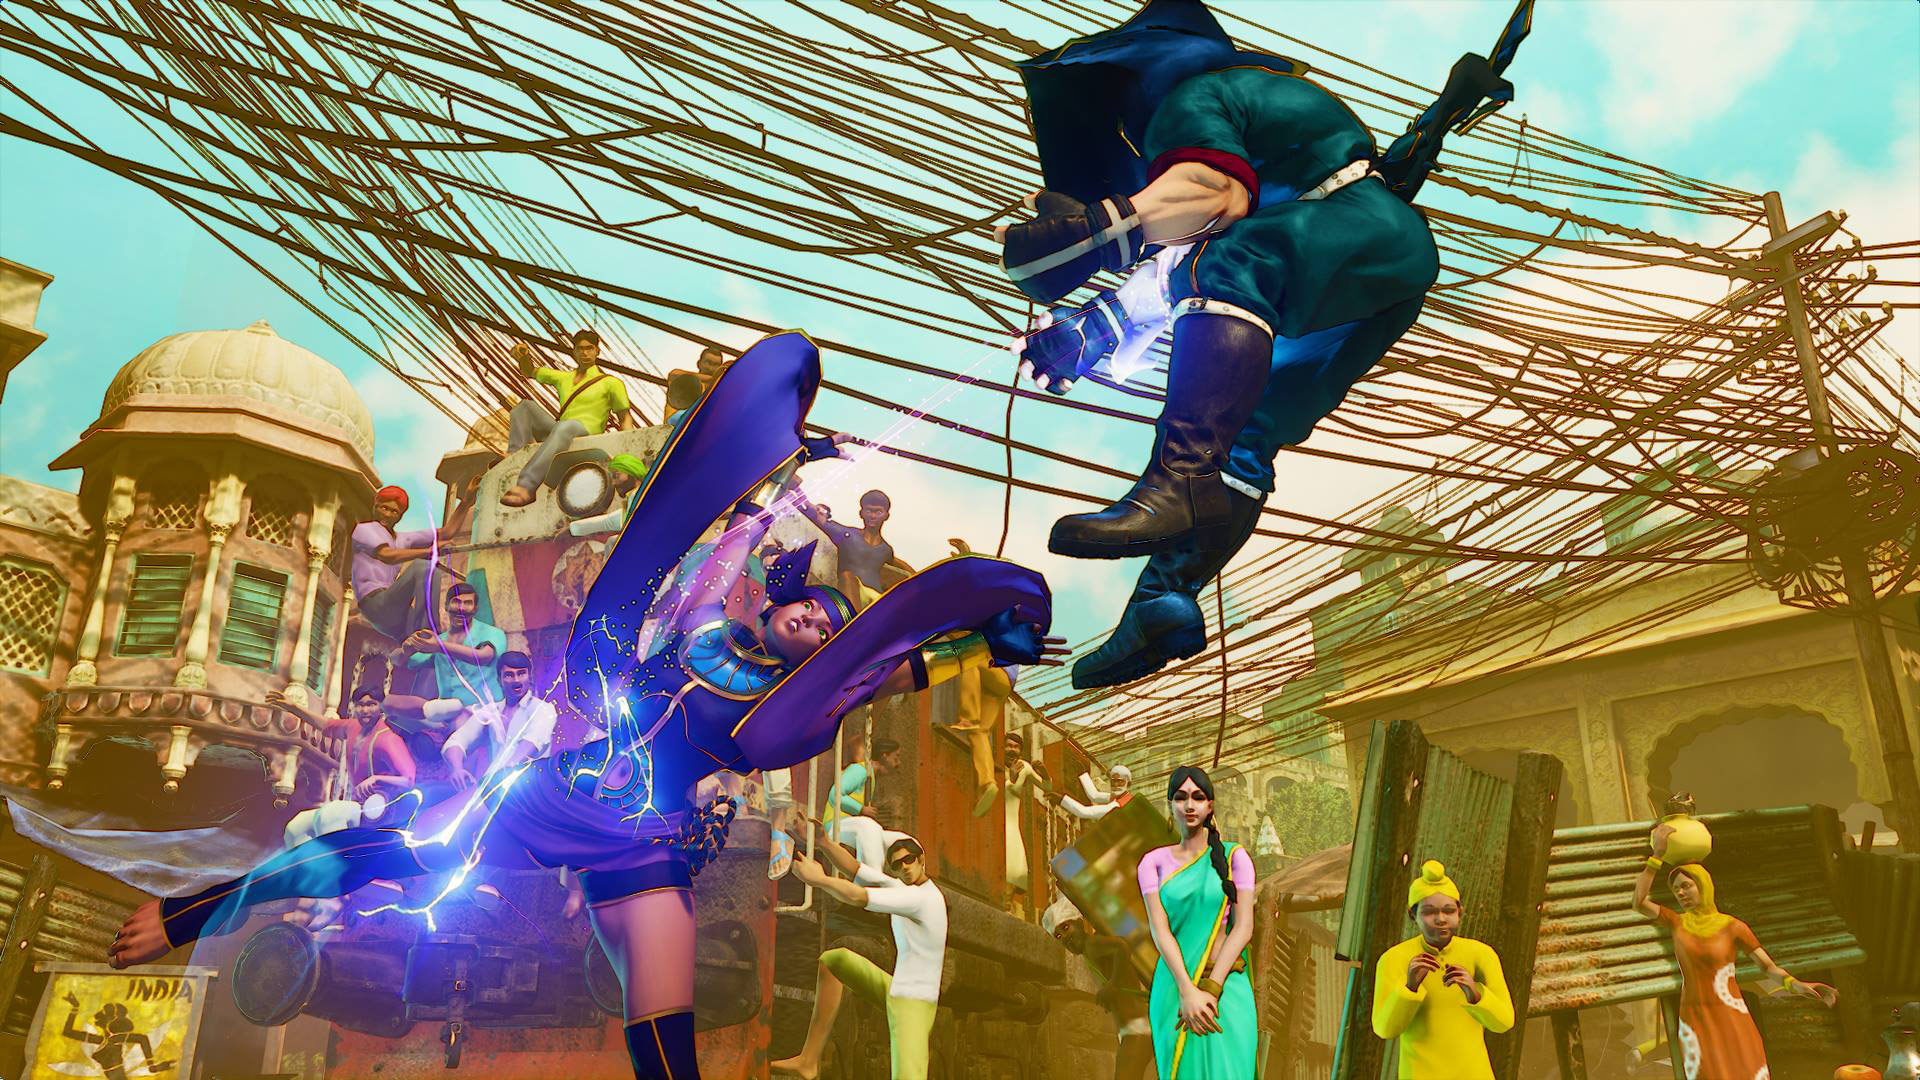 Menat in Street Fighter 5 8 out of 11 image gallery